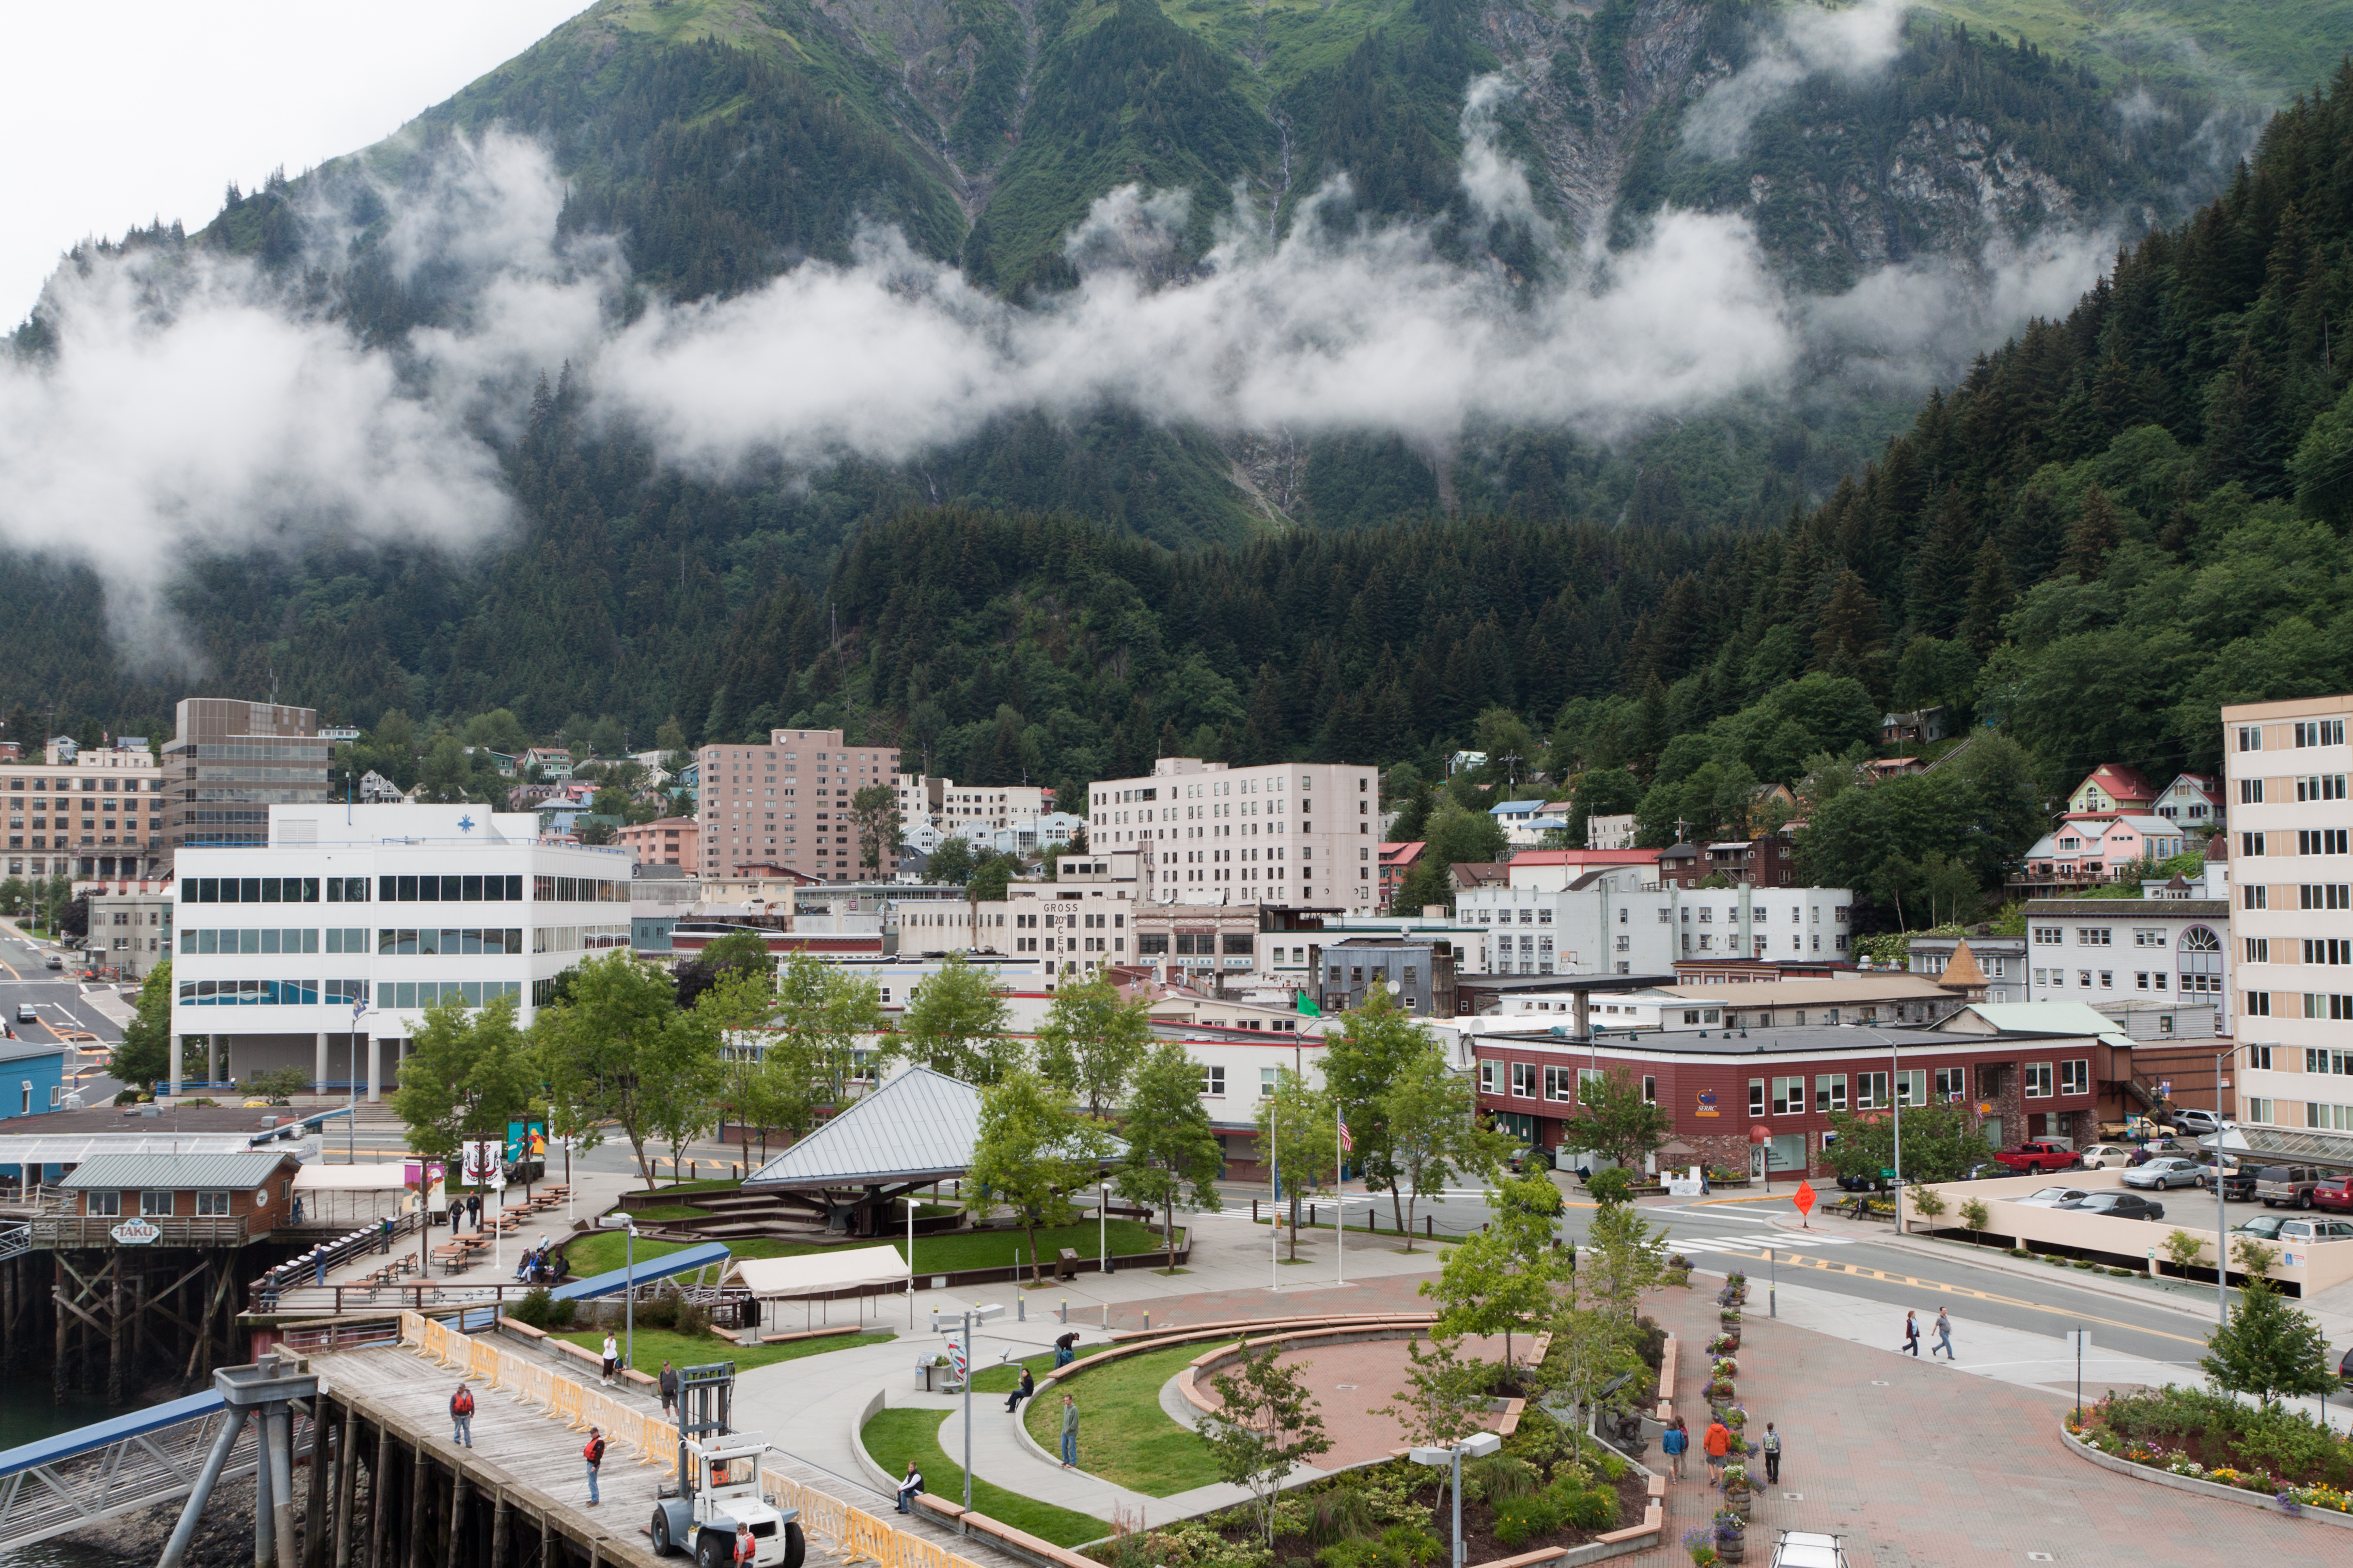 http://upload.wikimedia.org/wikipedia/commons/1/14/Downtown_Juneau_with_Mount_Juneau_rising_in_the_background.jpg